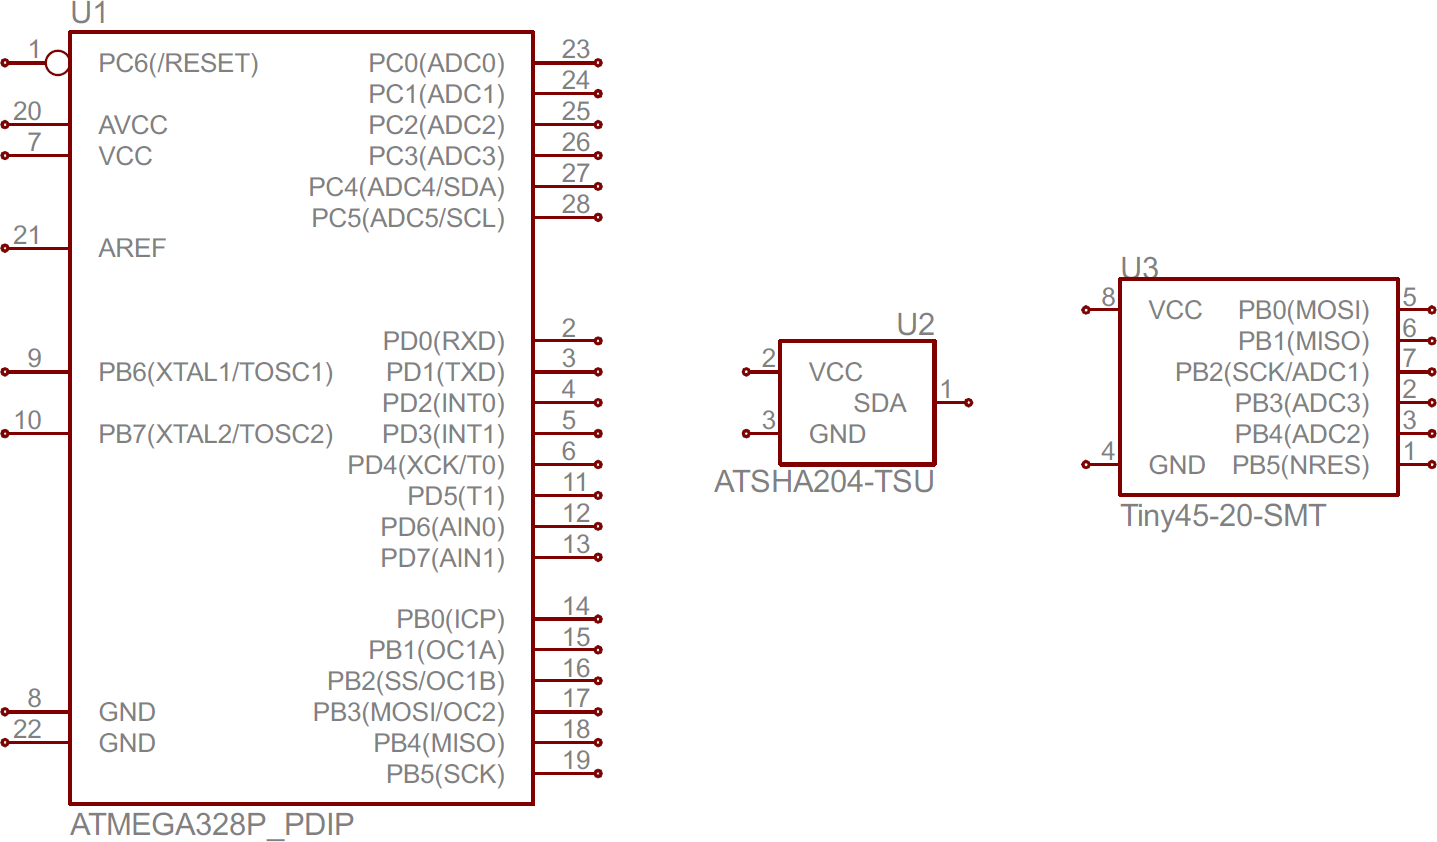 51cc9e55ce395f7f69000001 how to read a schematic learn sparkfun com wiring diagram symbols at sewacar.co